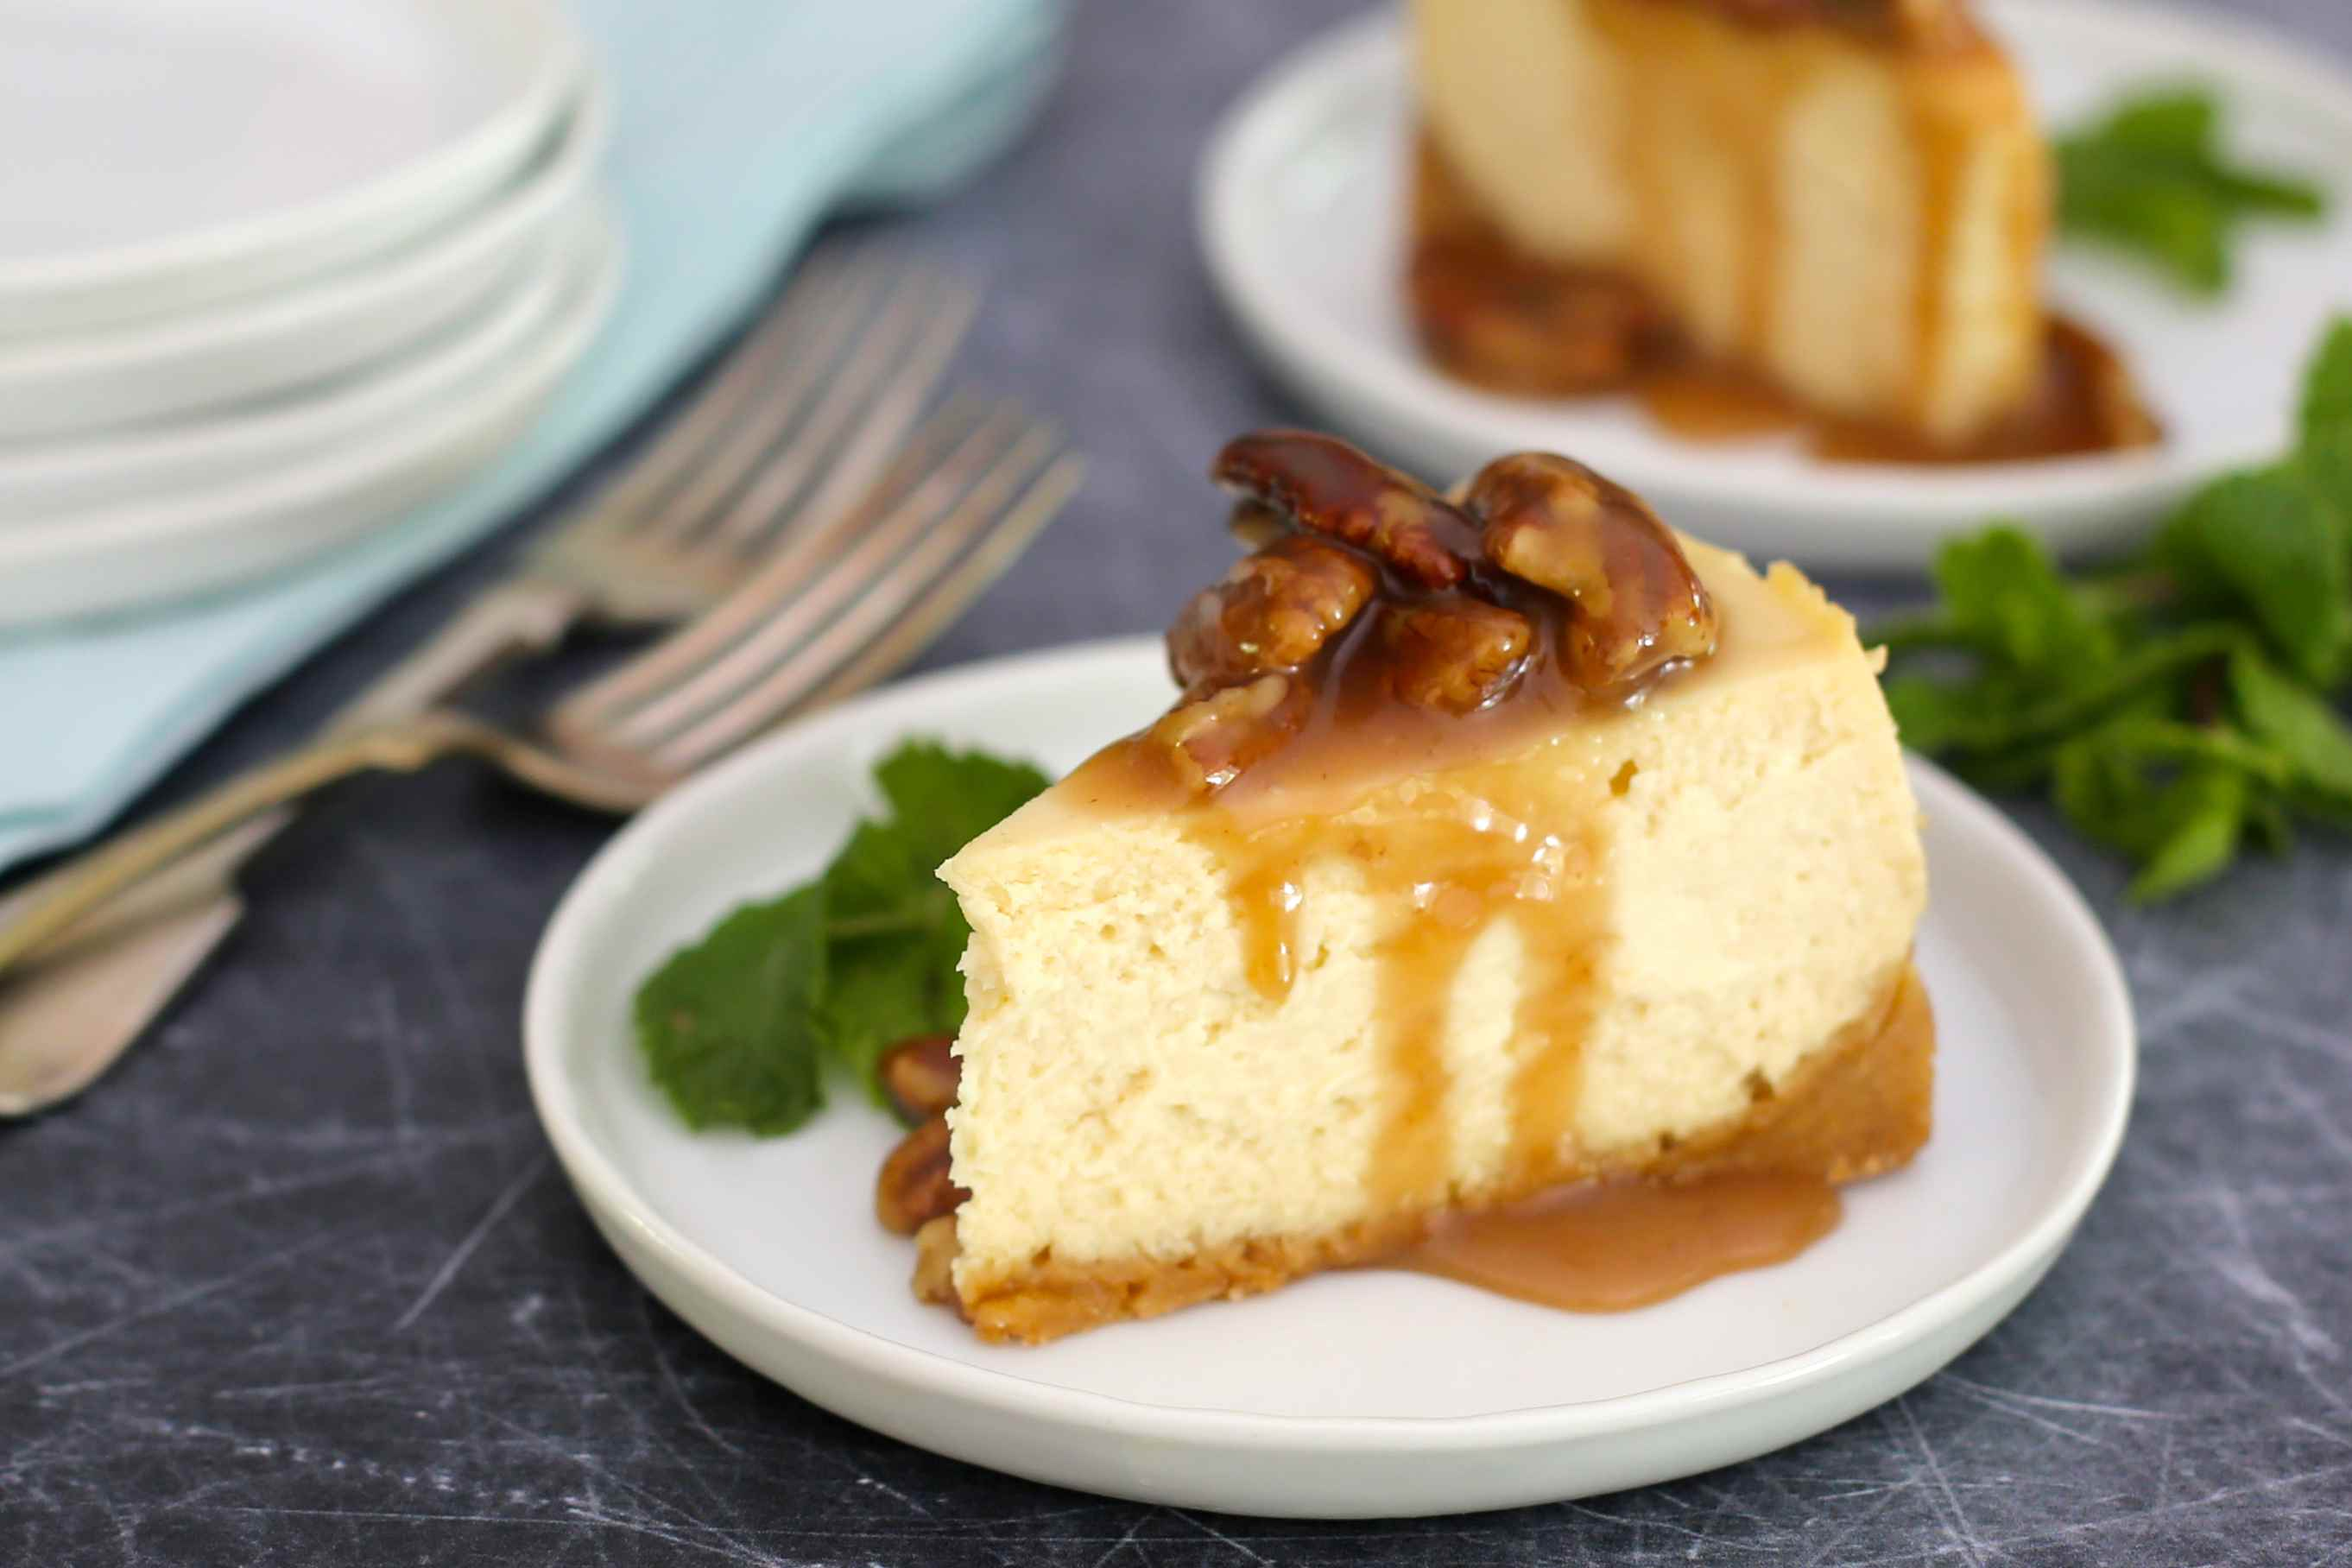 Drizzle topping over slices of cheesecake.